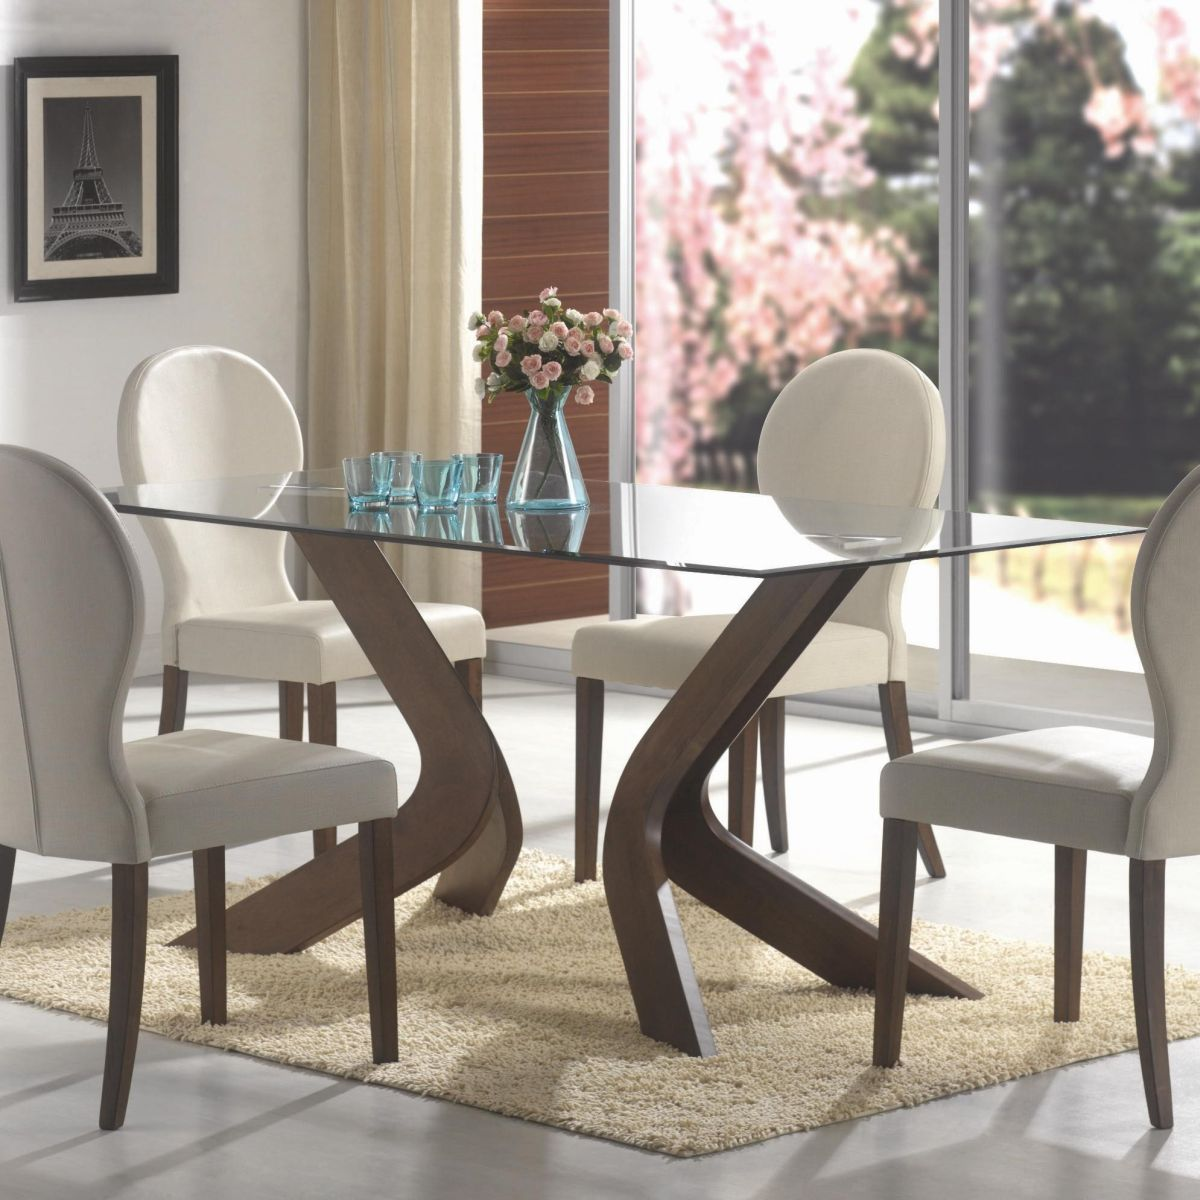 Dining table with chairs - Oval Back Dining Chairs And Glass Top Table